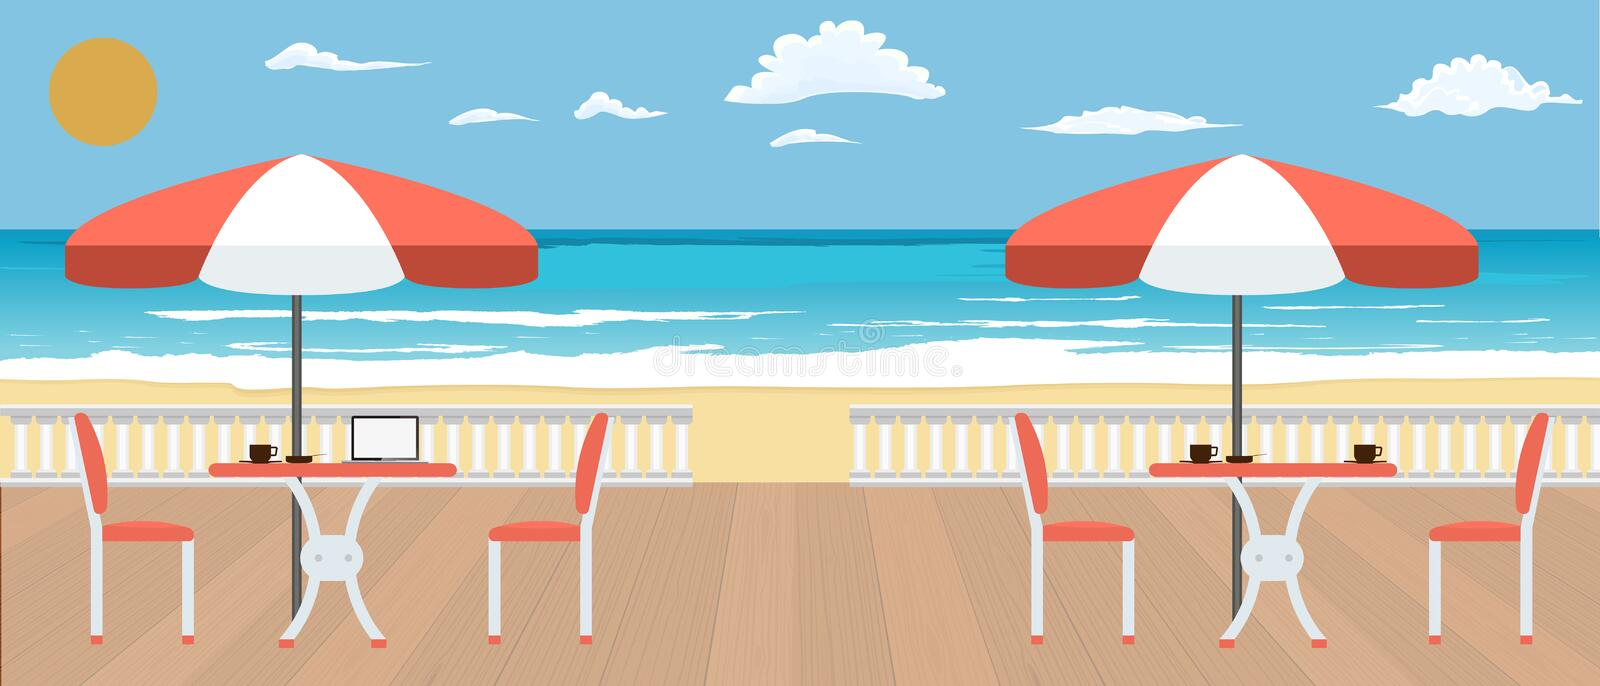 Large Cafe on the terrace near the seashore. Summer, Restaurant and travel concept banner. Vector illustration. stock illustration